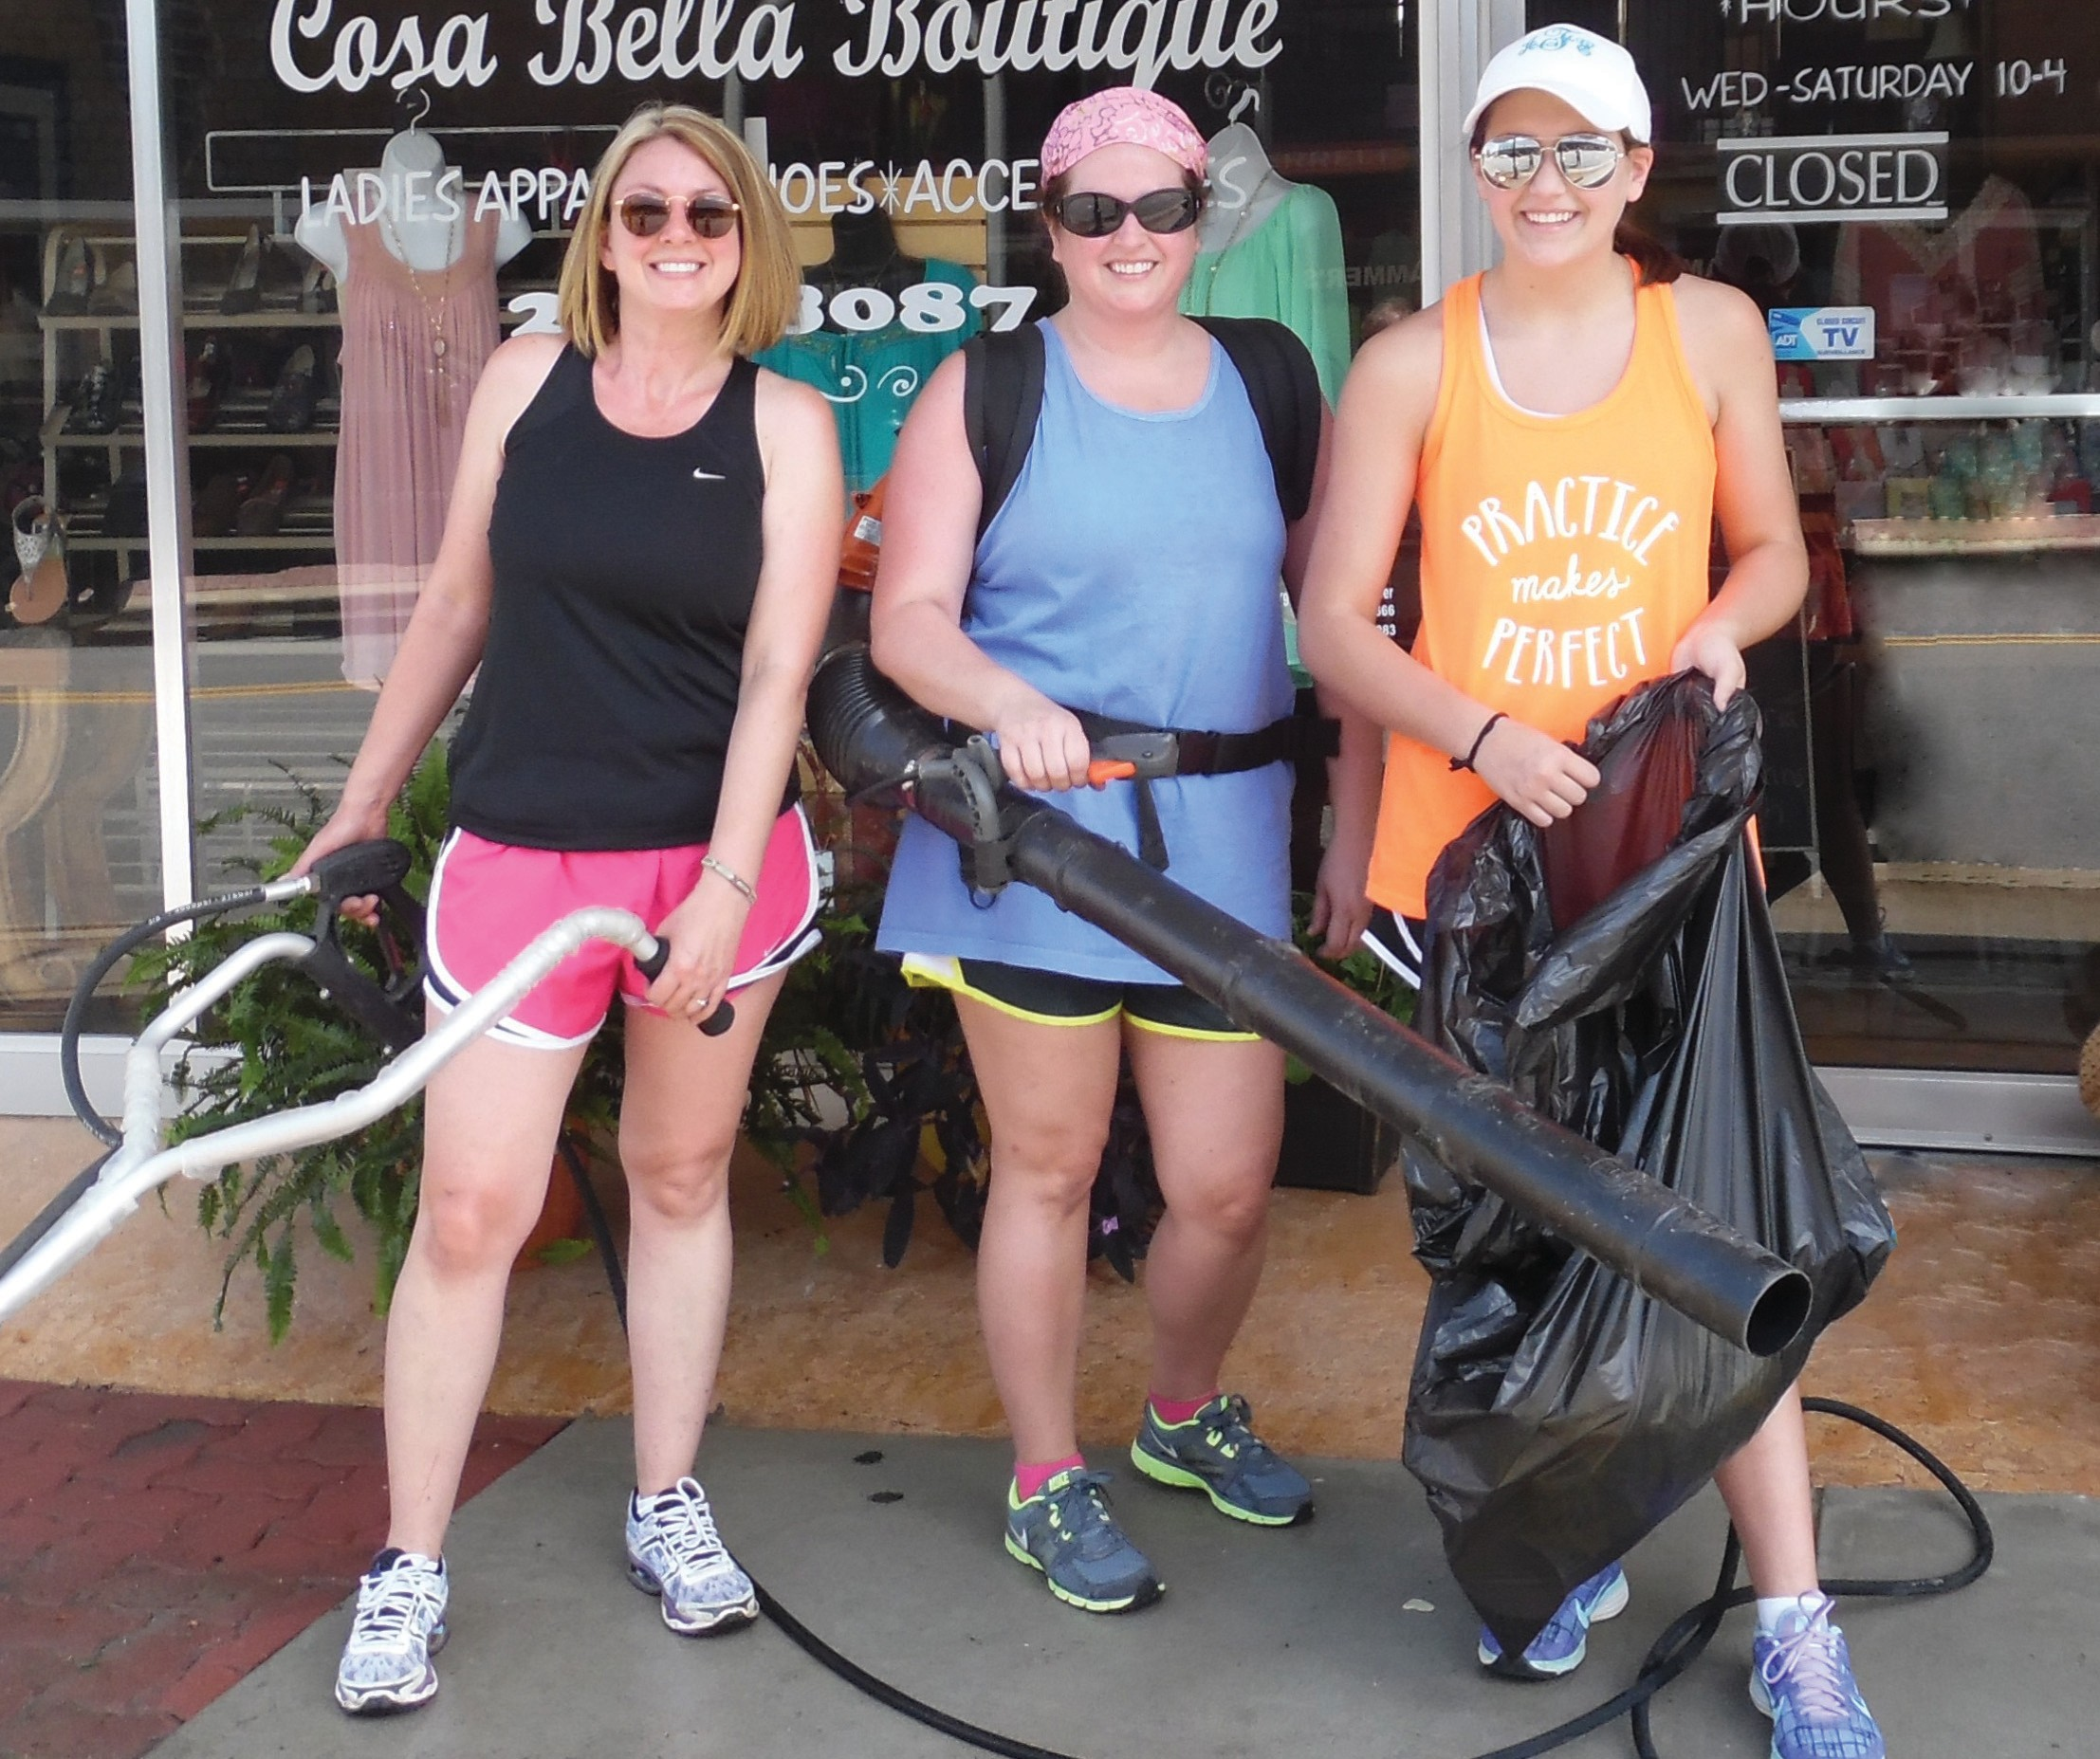 Several crews of intrepid volunteers with pressure washers, leaf-blowers, and trash bags mustered out last weekend to cleanse downtown Oneonta sidewalks and streets for the upcoming June Fling this Saturday, June 6. (Right) Gina Whitten, Allison Pearman, and Anna Frey prepare to swing into action to make a clean sweep of the part of downtown from Cosa Bella, up to the top of tintown (now there's a restaurant name for you!) at Beautique Salon. That's a third of downtown in linear feet, an afternoon's work not to be sneezed at, especially for unpaid volunteers. Show your appreciation, Blount County. Take it out in trade Saturday from 9 a.m. to 3 p.m. at the June Fling. (See lineup of events on pg. 5). Here's a partial list of some others who volunteered in order to make your surroundings pleasant: Jeremy Self, Frank Nette, Derek Pearman, Daniel Clem, Sherry Pierce, Sheila Sorrow, Roy Sorrow, Chuck Morrison, members of the Oneonta Business Association, and members of Revitalizing Oneonta. – Ron Gholson